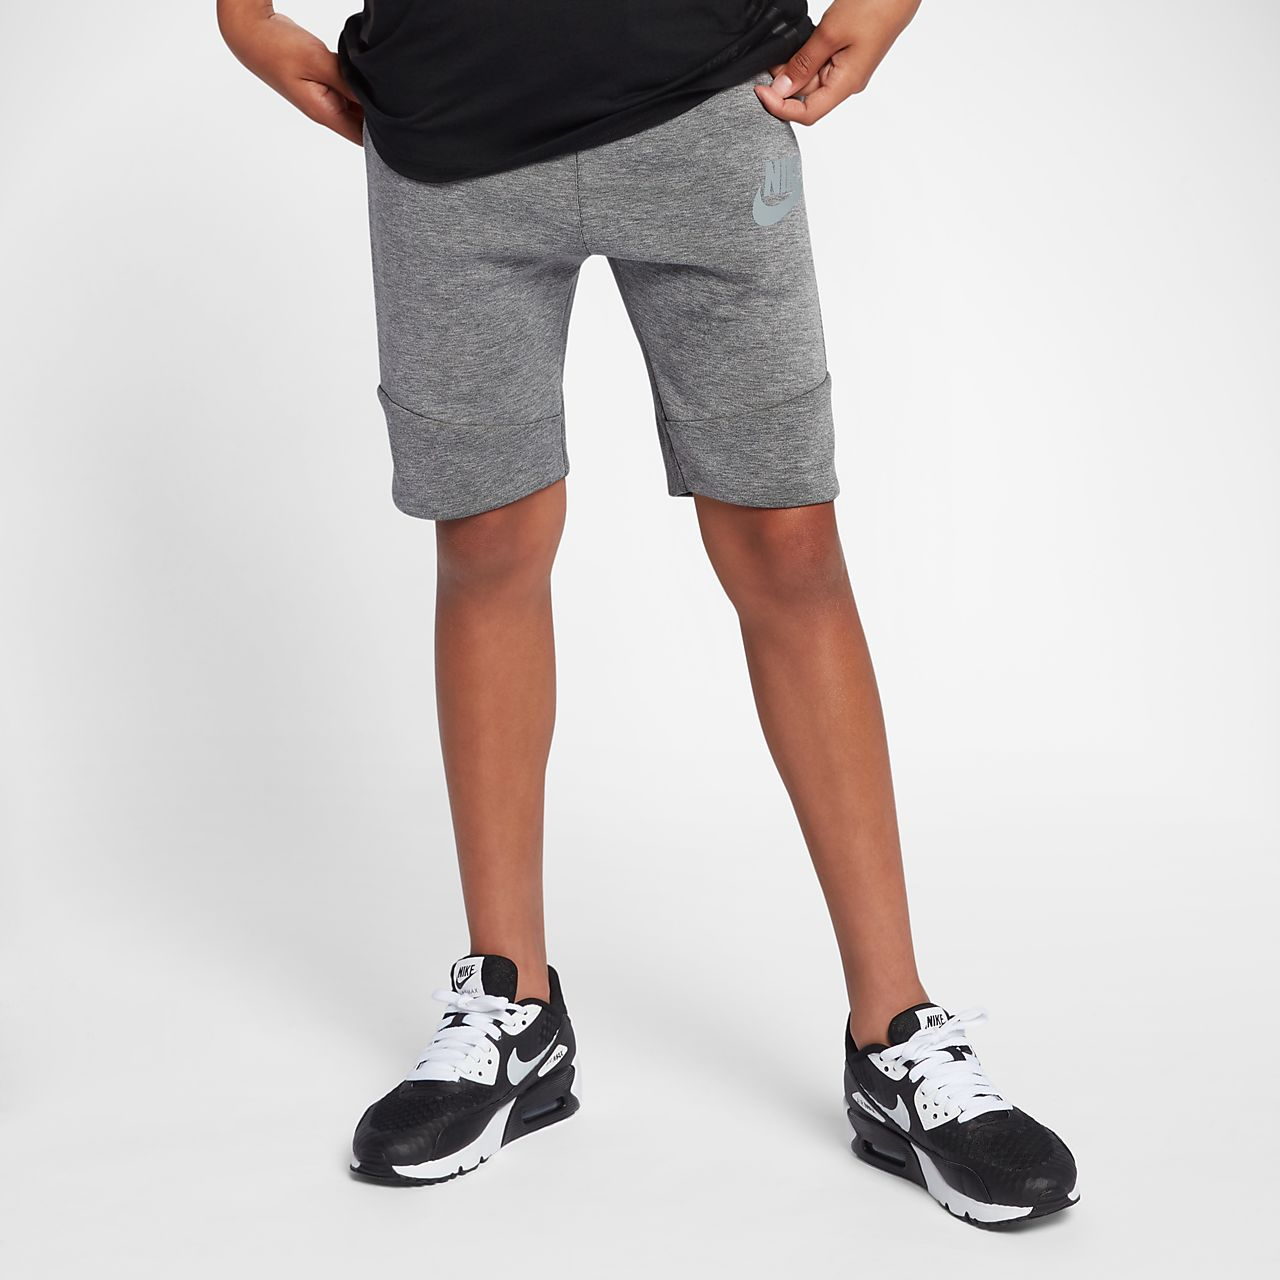 8dbff5a3a5e7 Nike Sportswear Tech Fleece Older Kids  Shorts. Nike.com NL